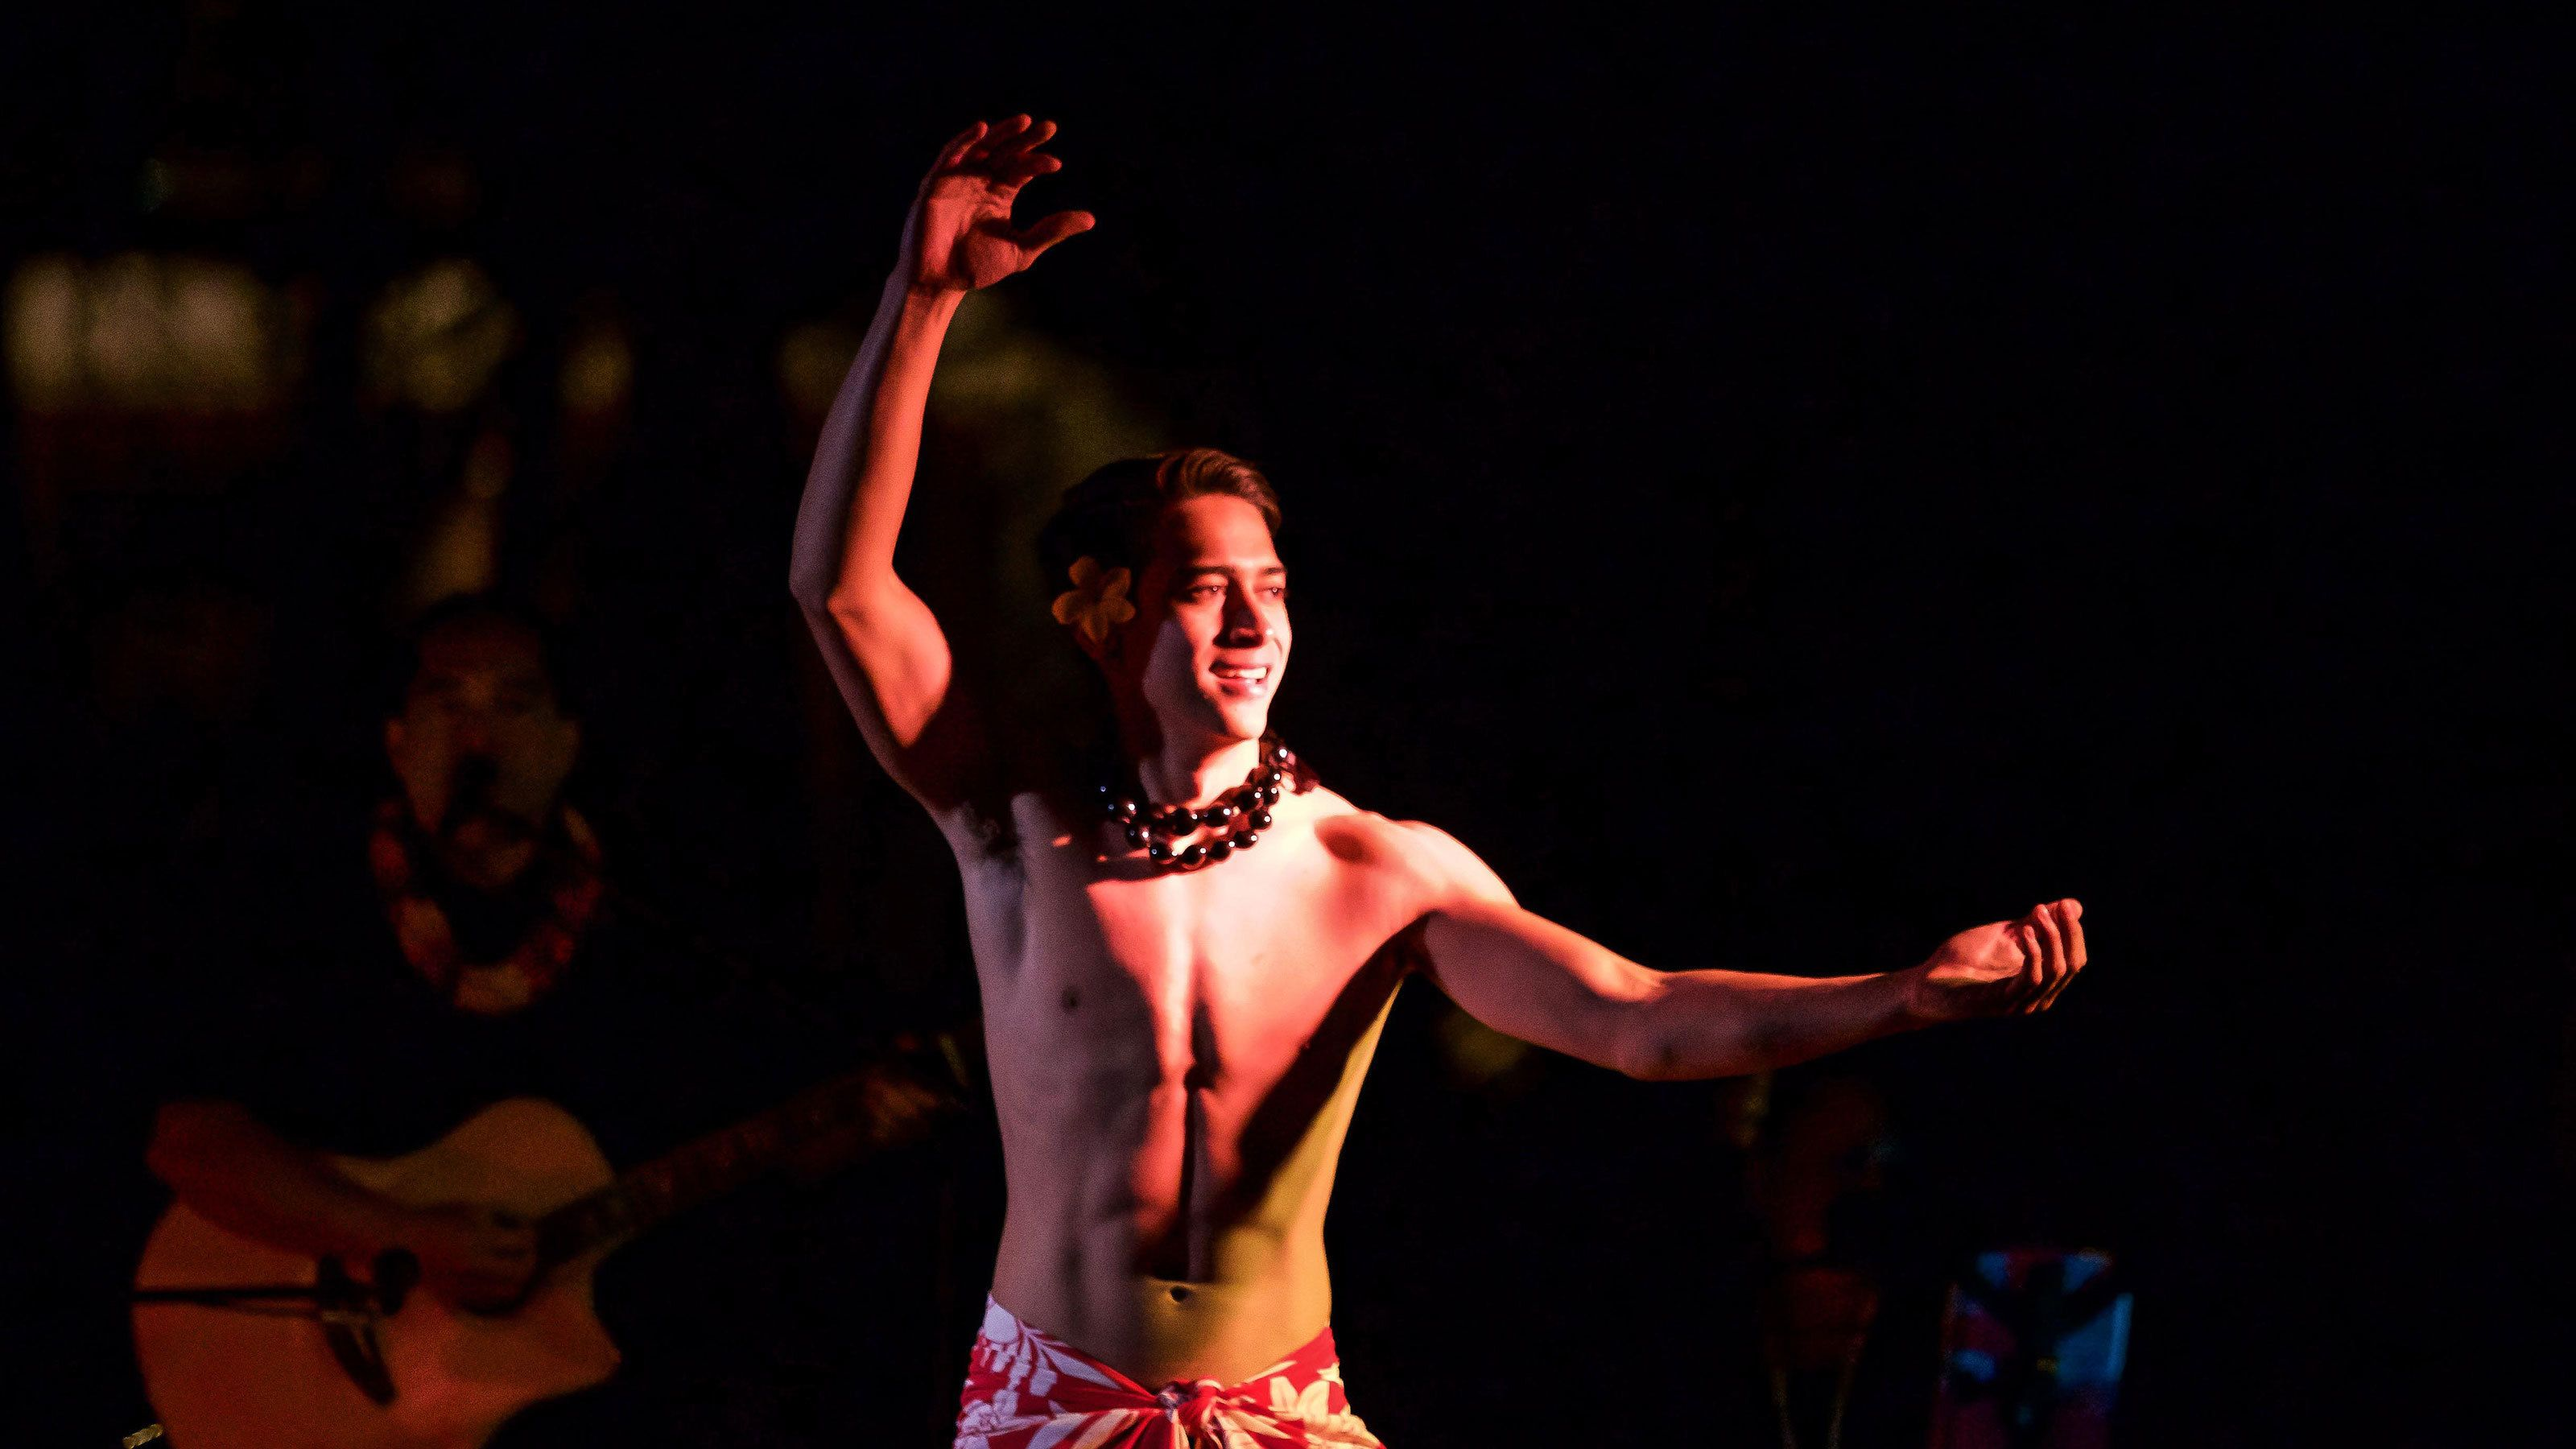 Luau performer in middle of performance in Kauai